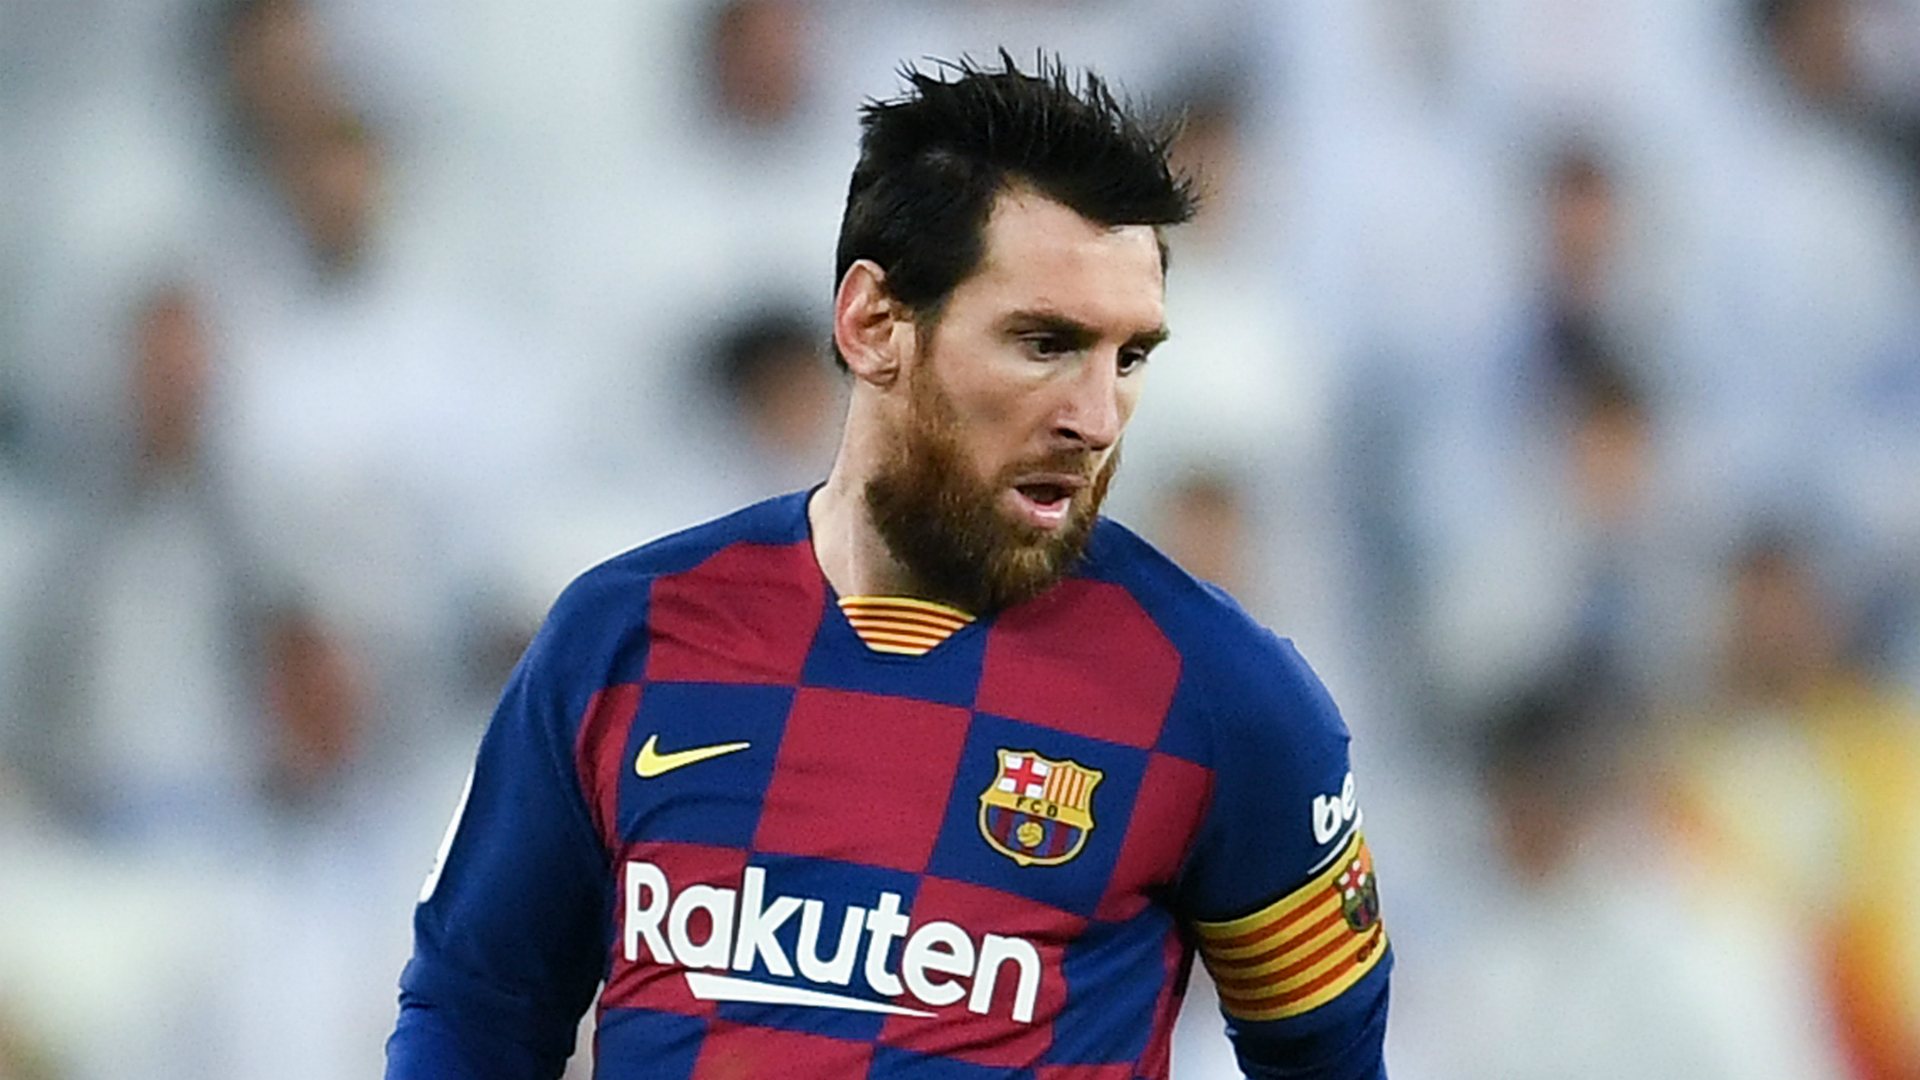 Messi leaving Barcelona would not be 'a drama' for LaLiga, says Tebas